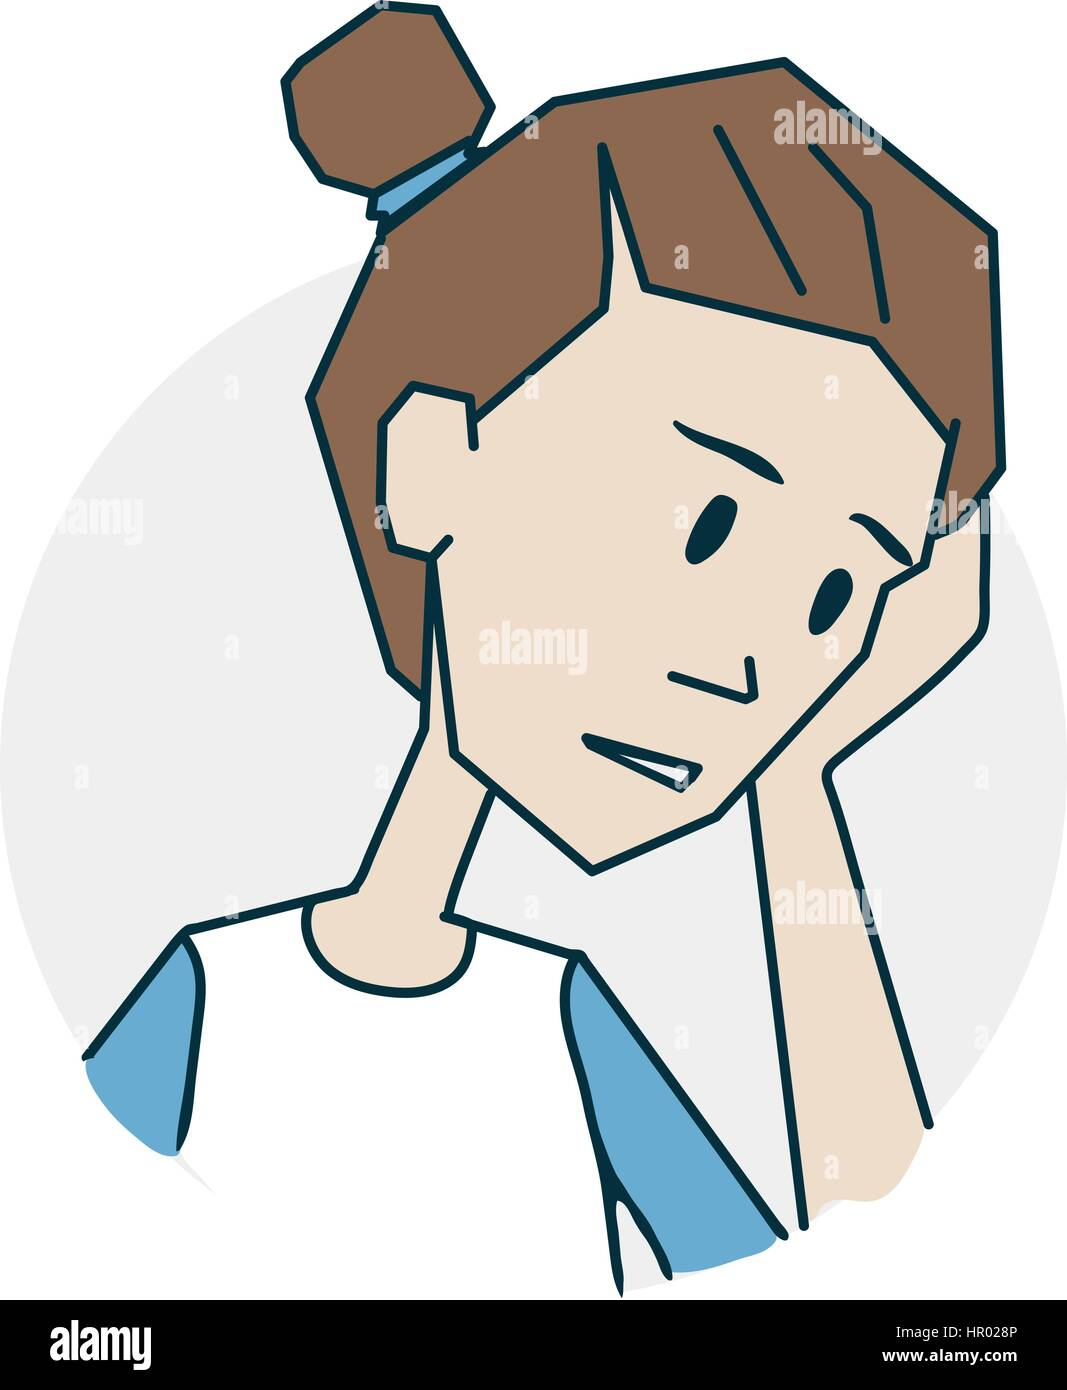 Girl upset. The girl has a headache. Icon on medical subjects. Illustration of a funny cartoon style - Stock Vector